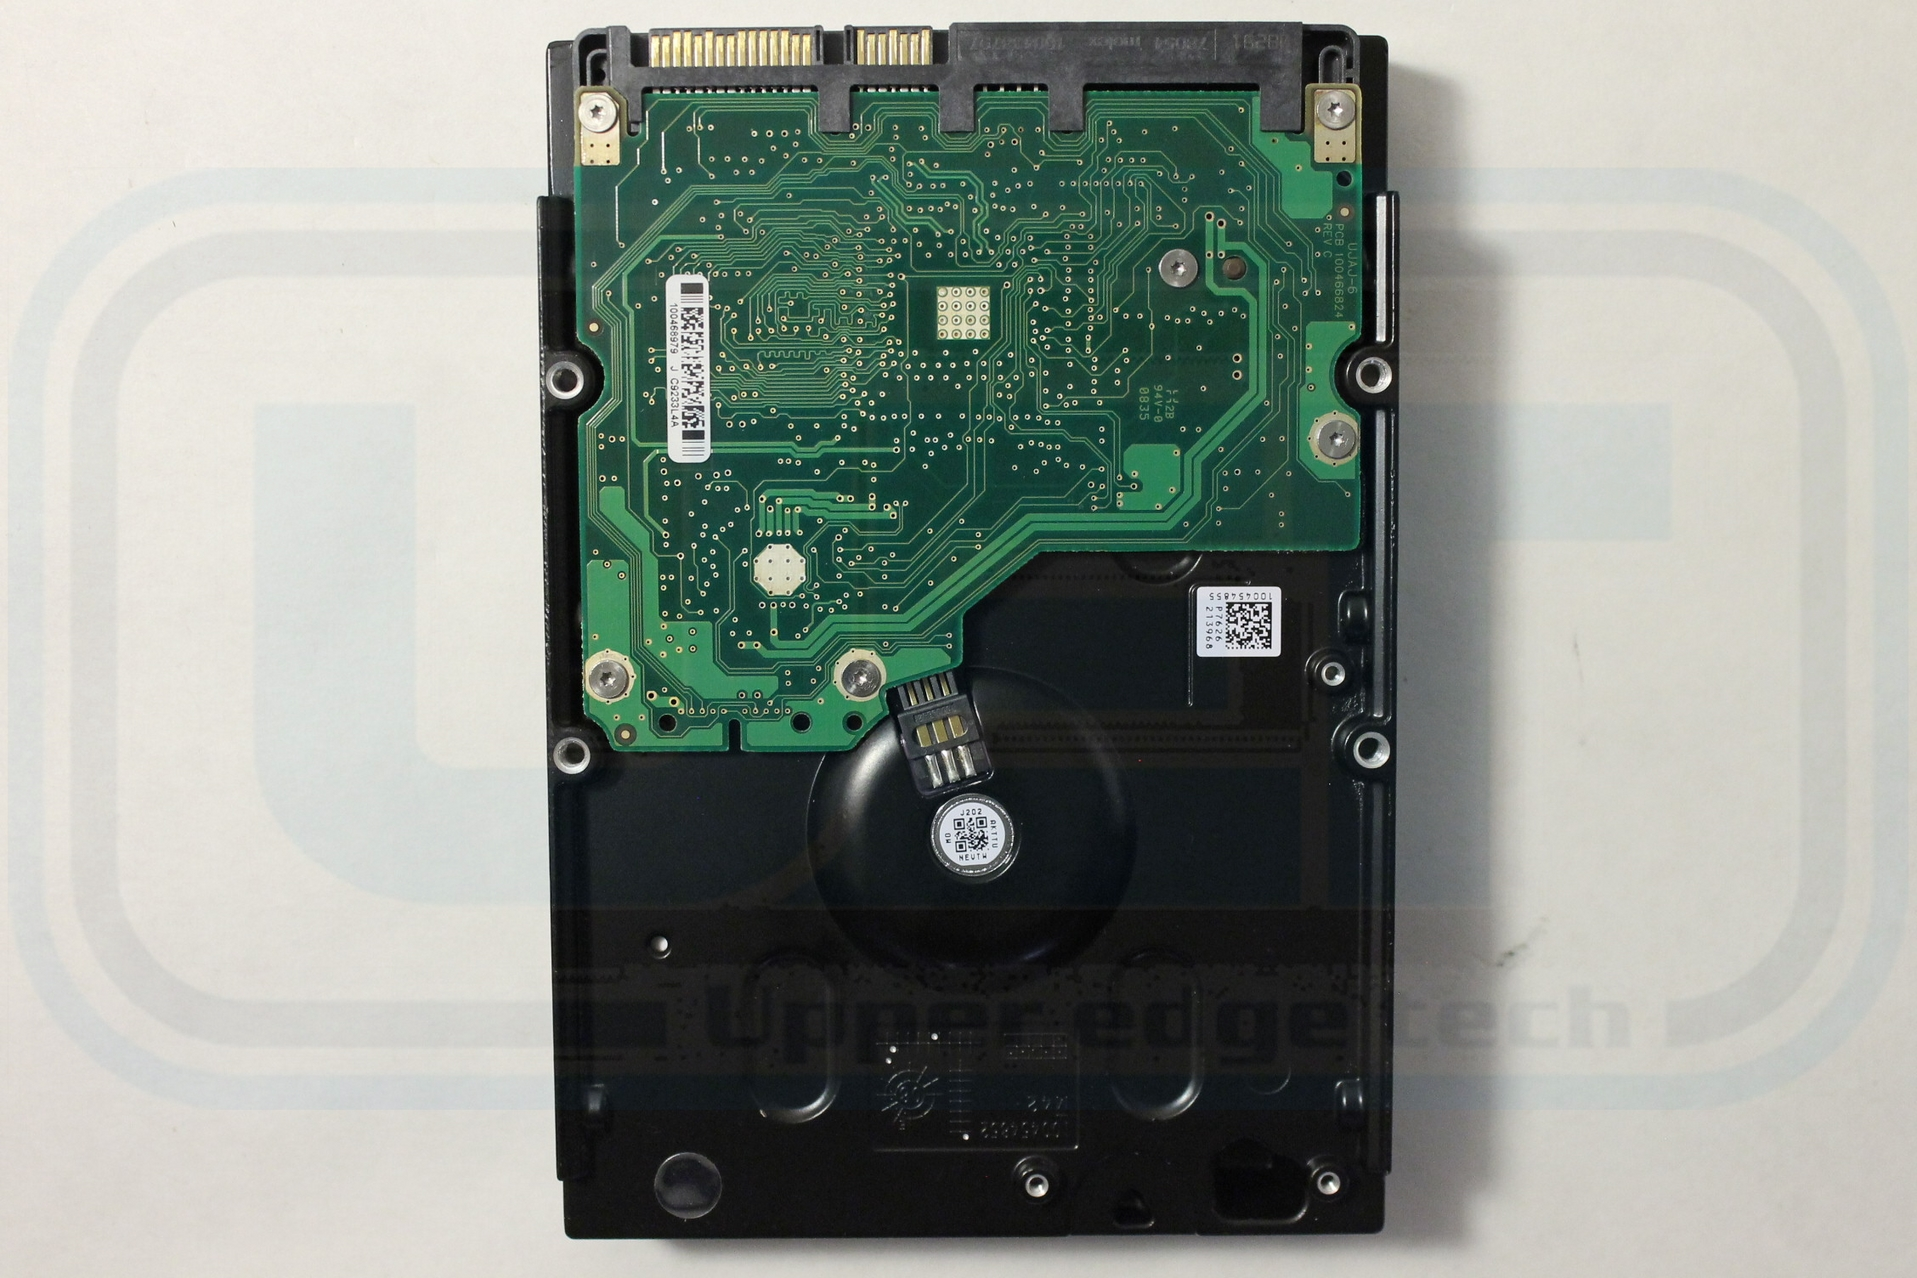 Dell XPS One Seagate ST3750630AS Drivers for PC